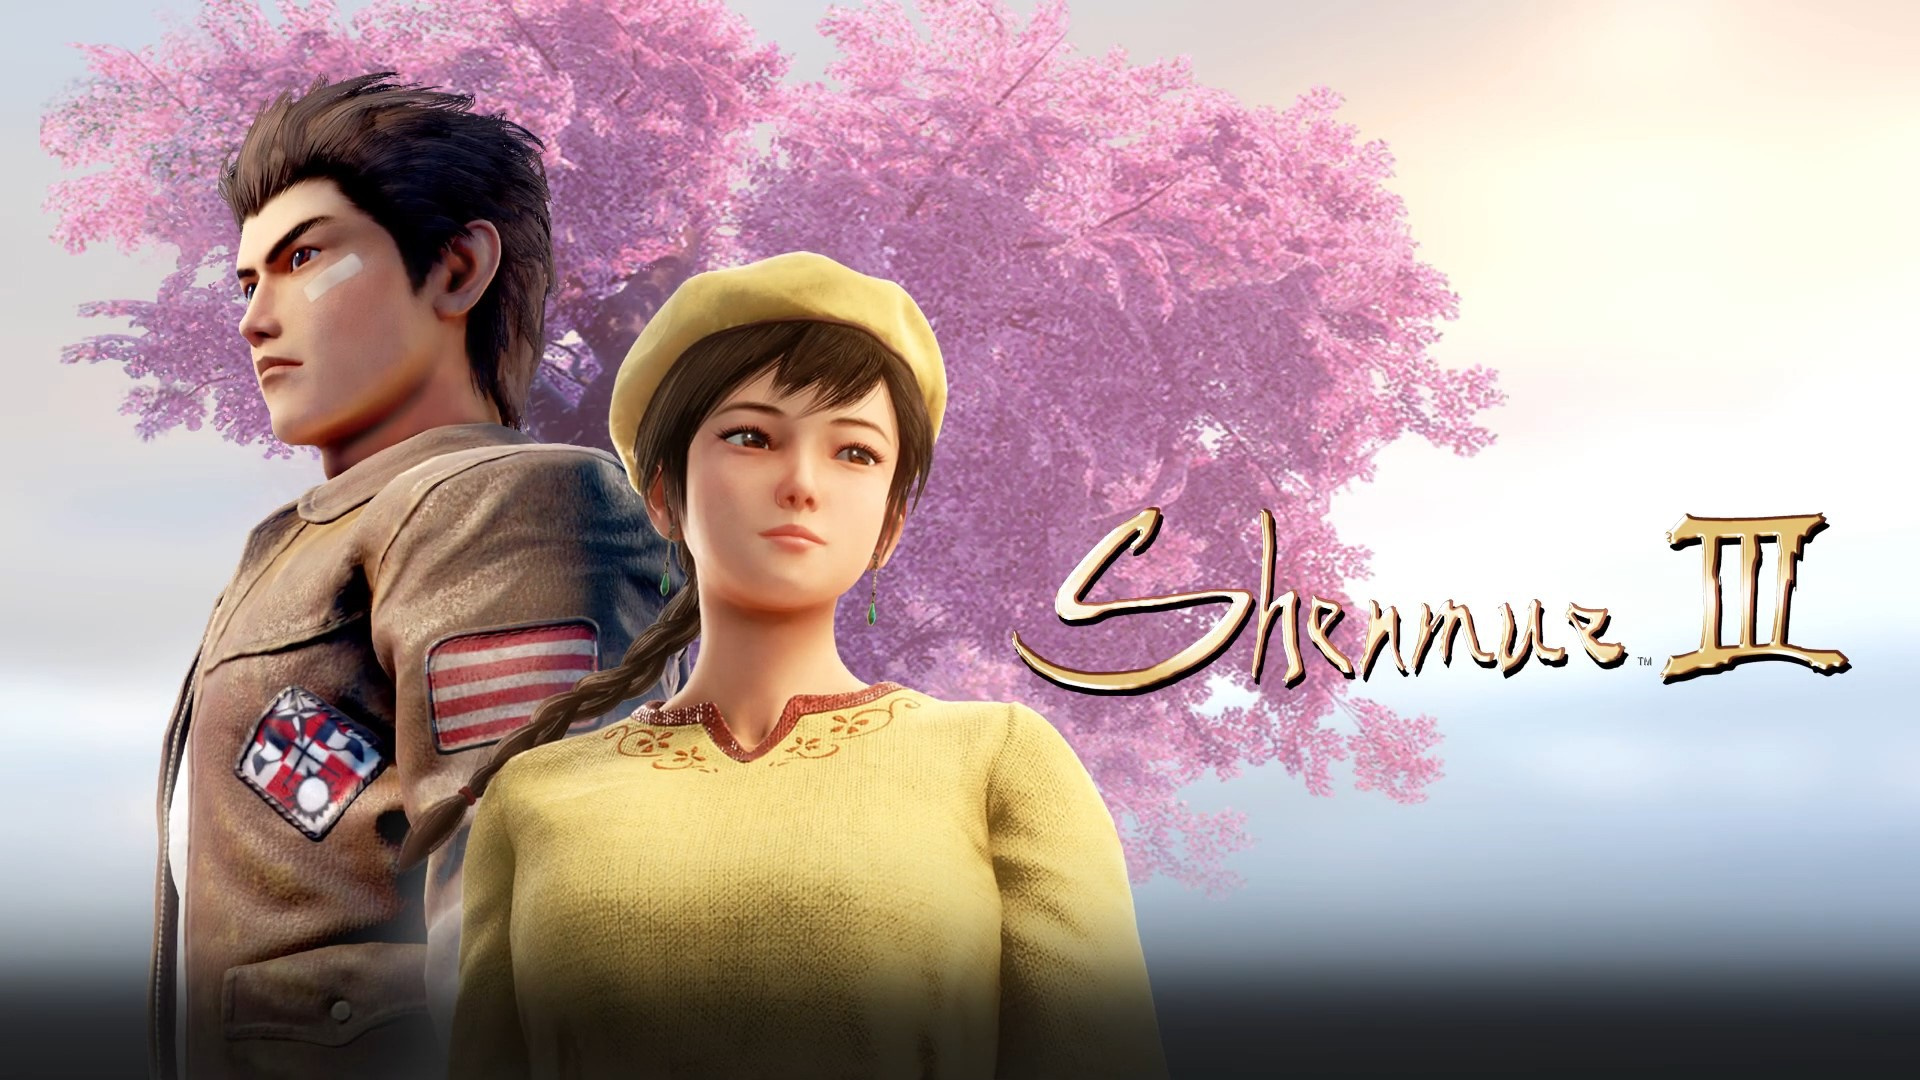 Shenmue III is finally out after an 18-year wait